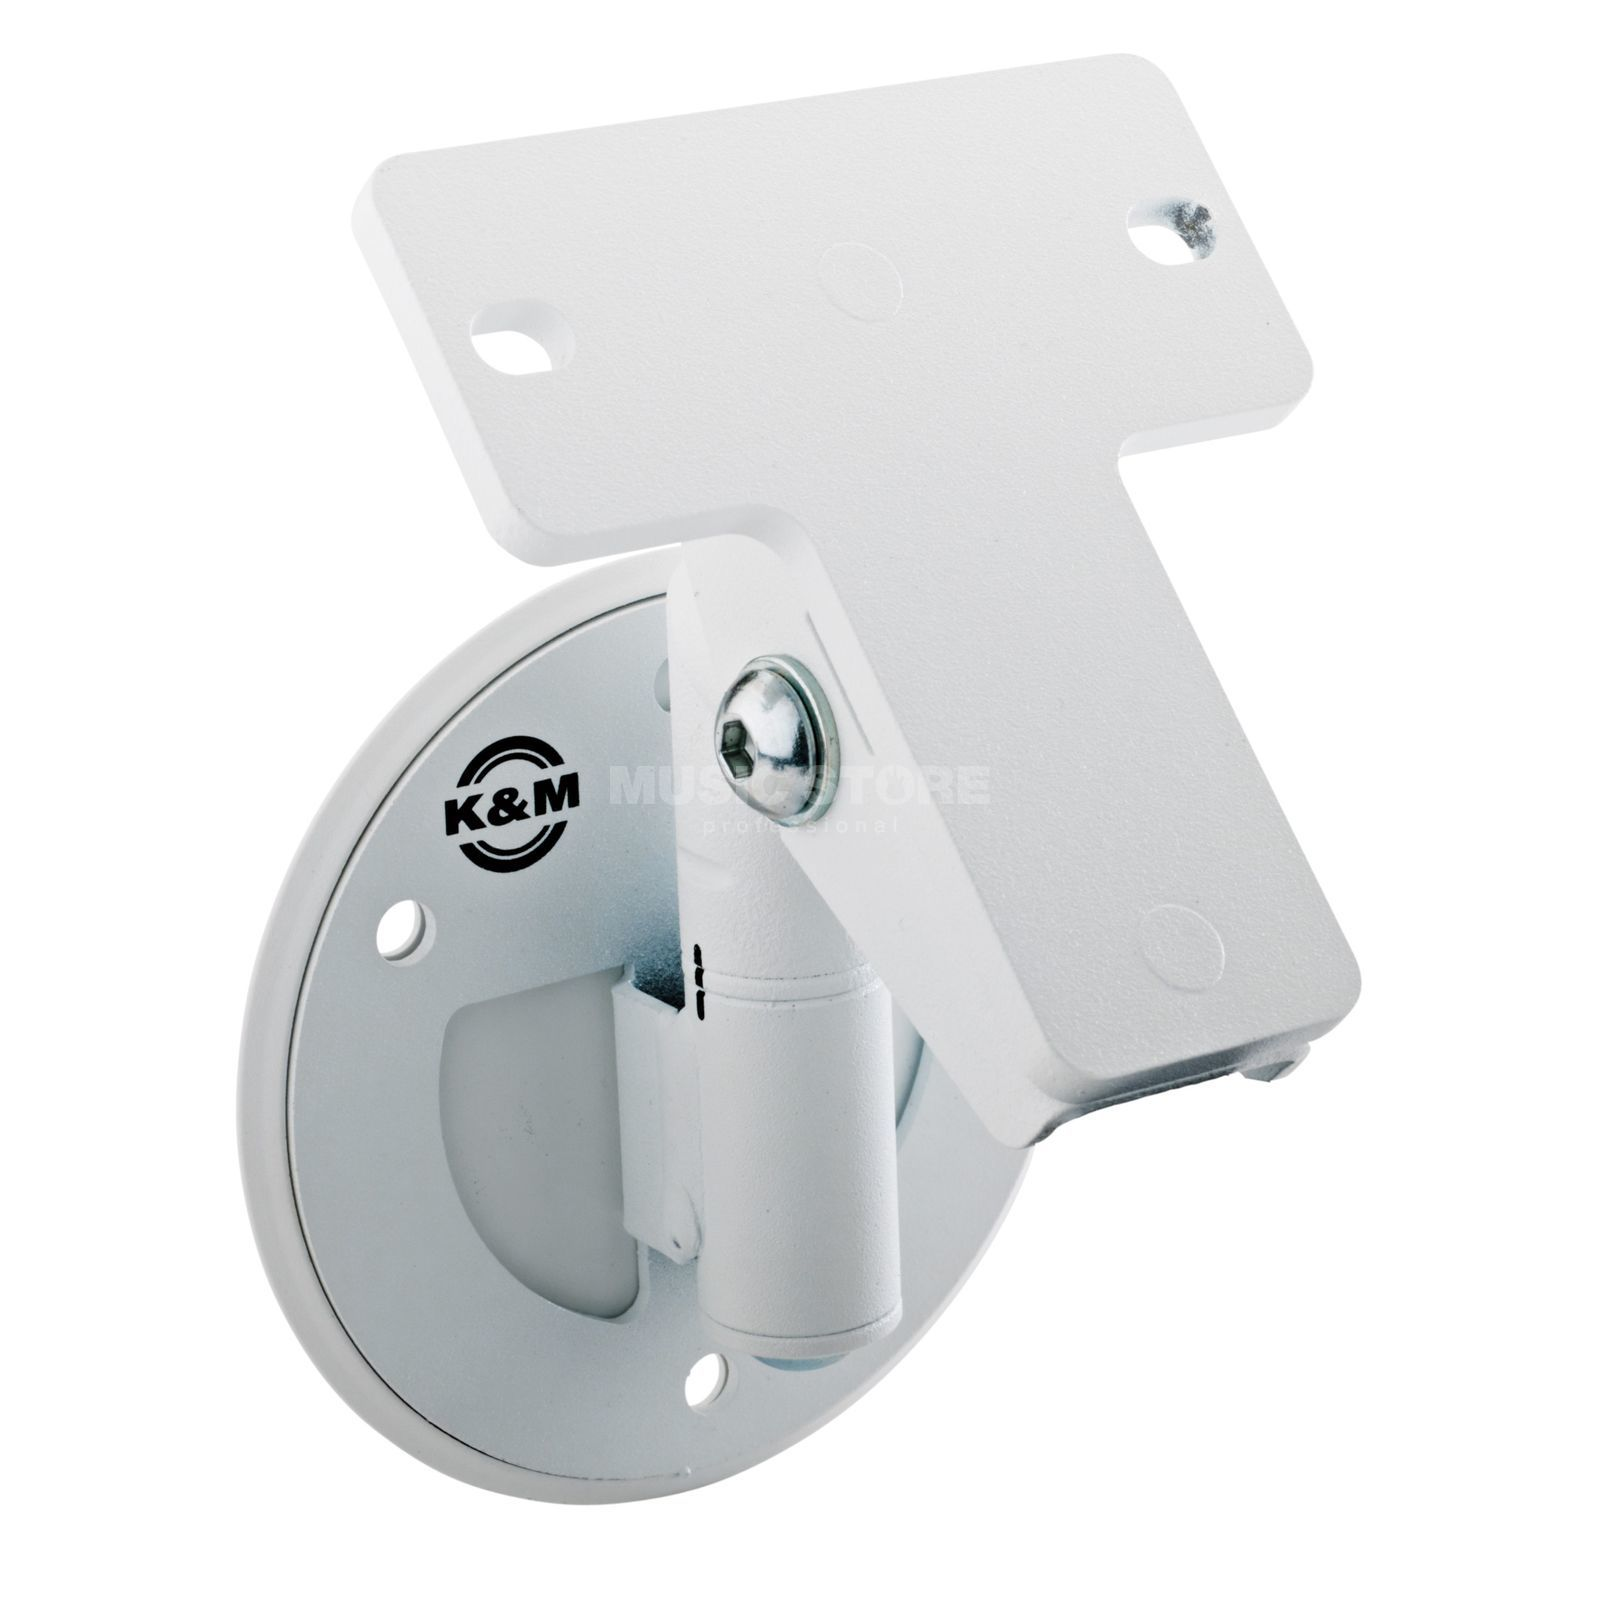 König & Meyer 24161 Speaker Wall Mount White Produktbillede